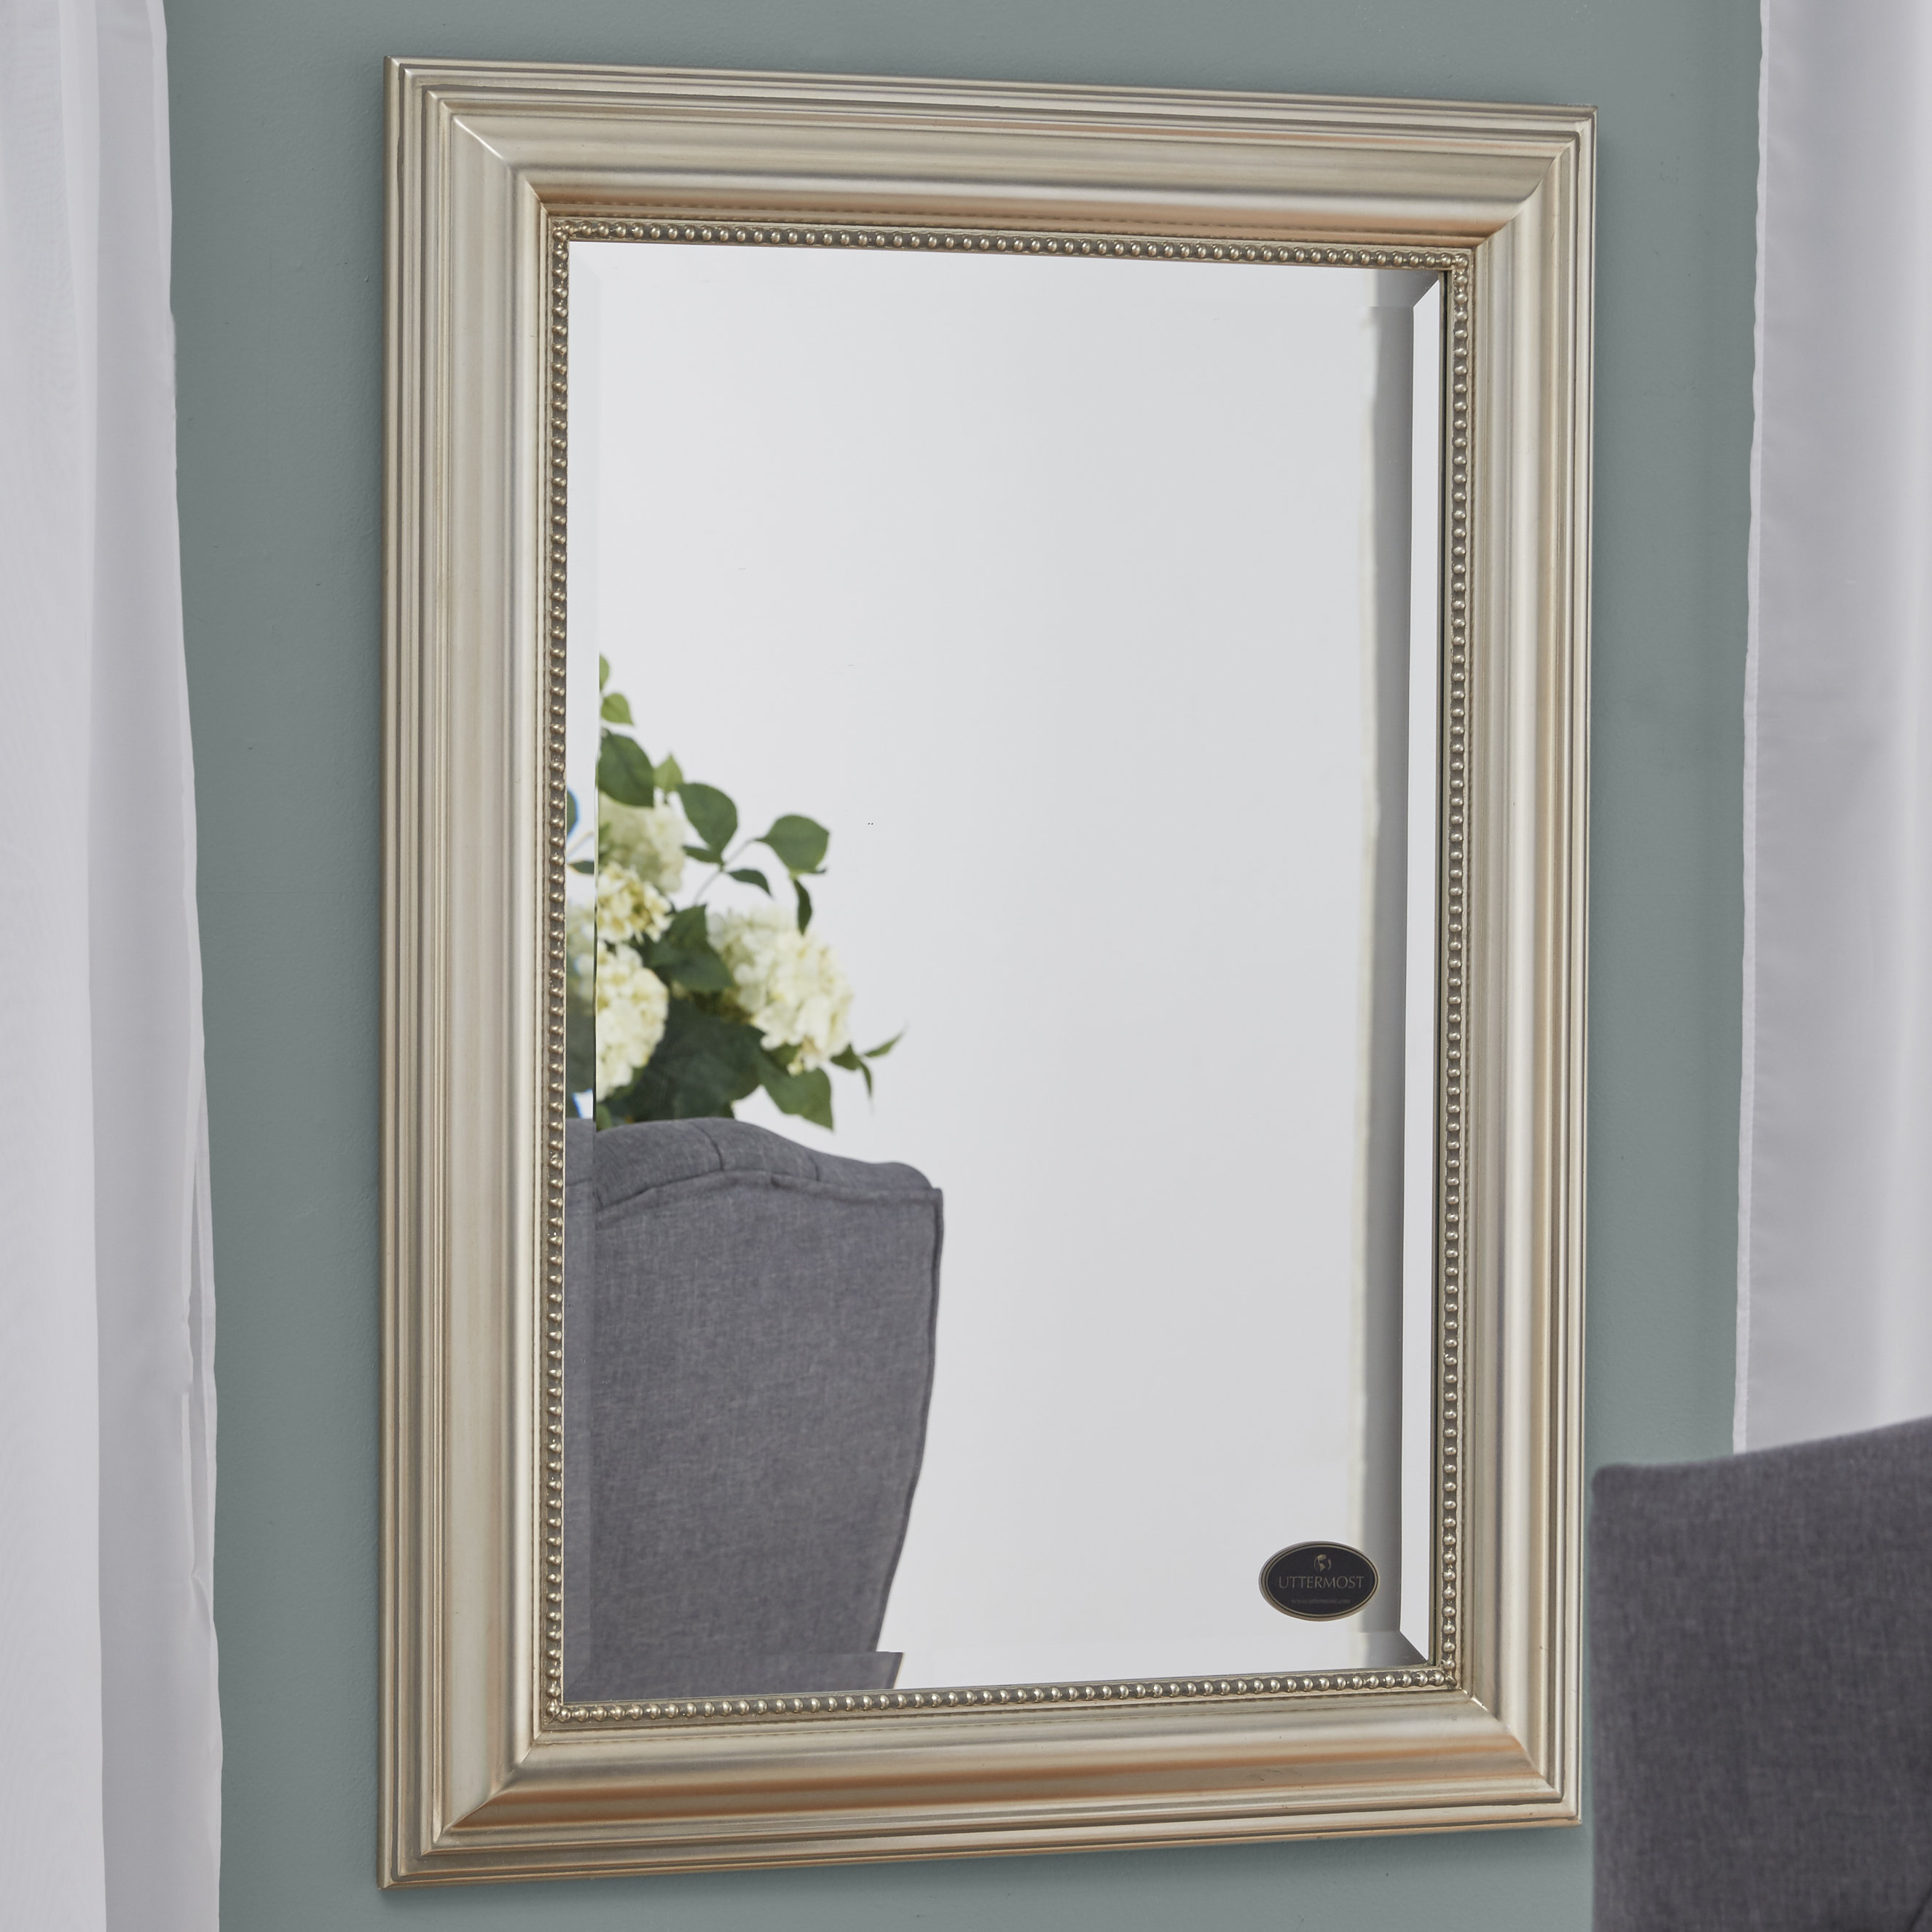 Glass Wall Mirrors | Joss & Main pertaining to Pennsburg Rectangle Wall Mirror (Image 8 of 30)